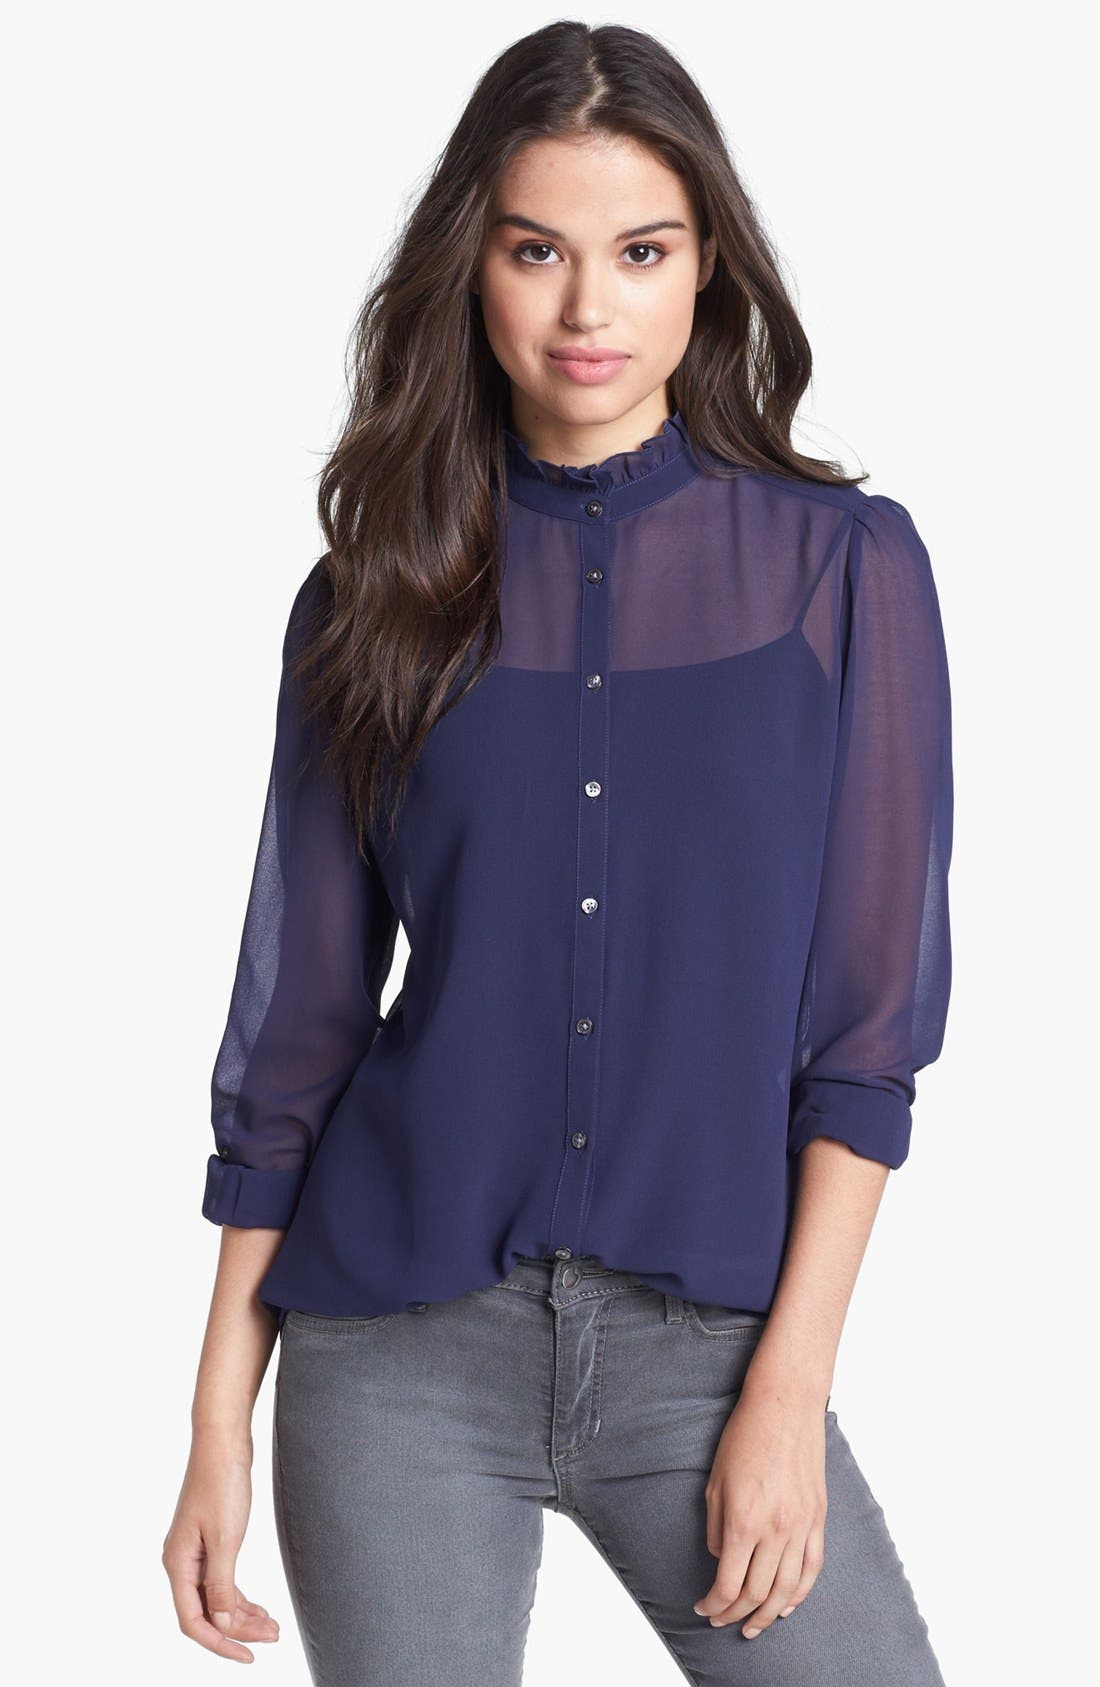 Alternate Image 1 Selected - Halogen® Ruffle Collar Chiffon Blouse (Regular & Petite)